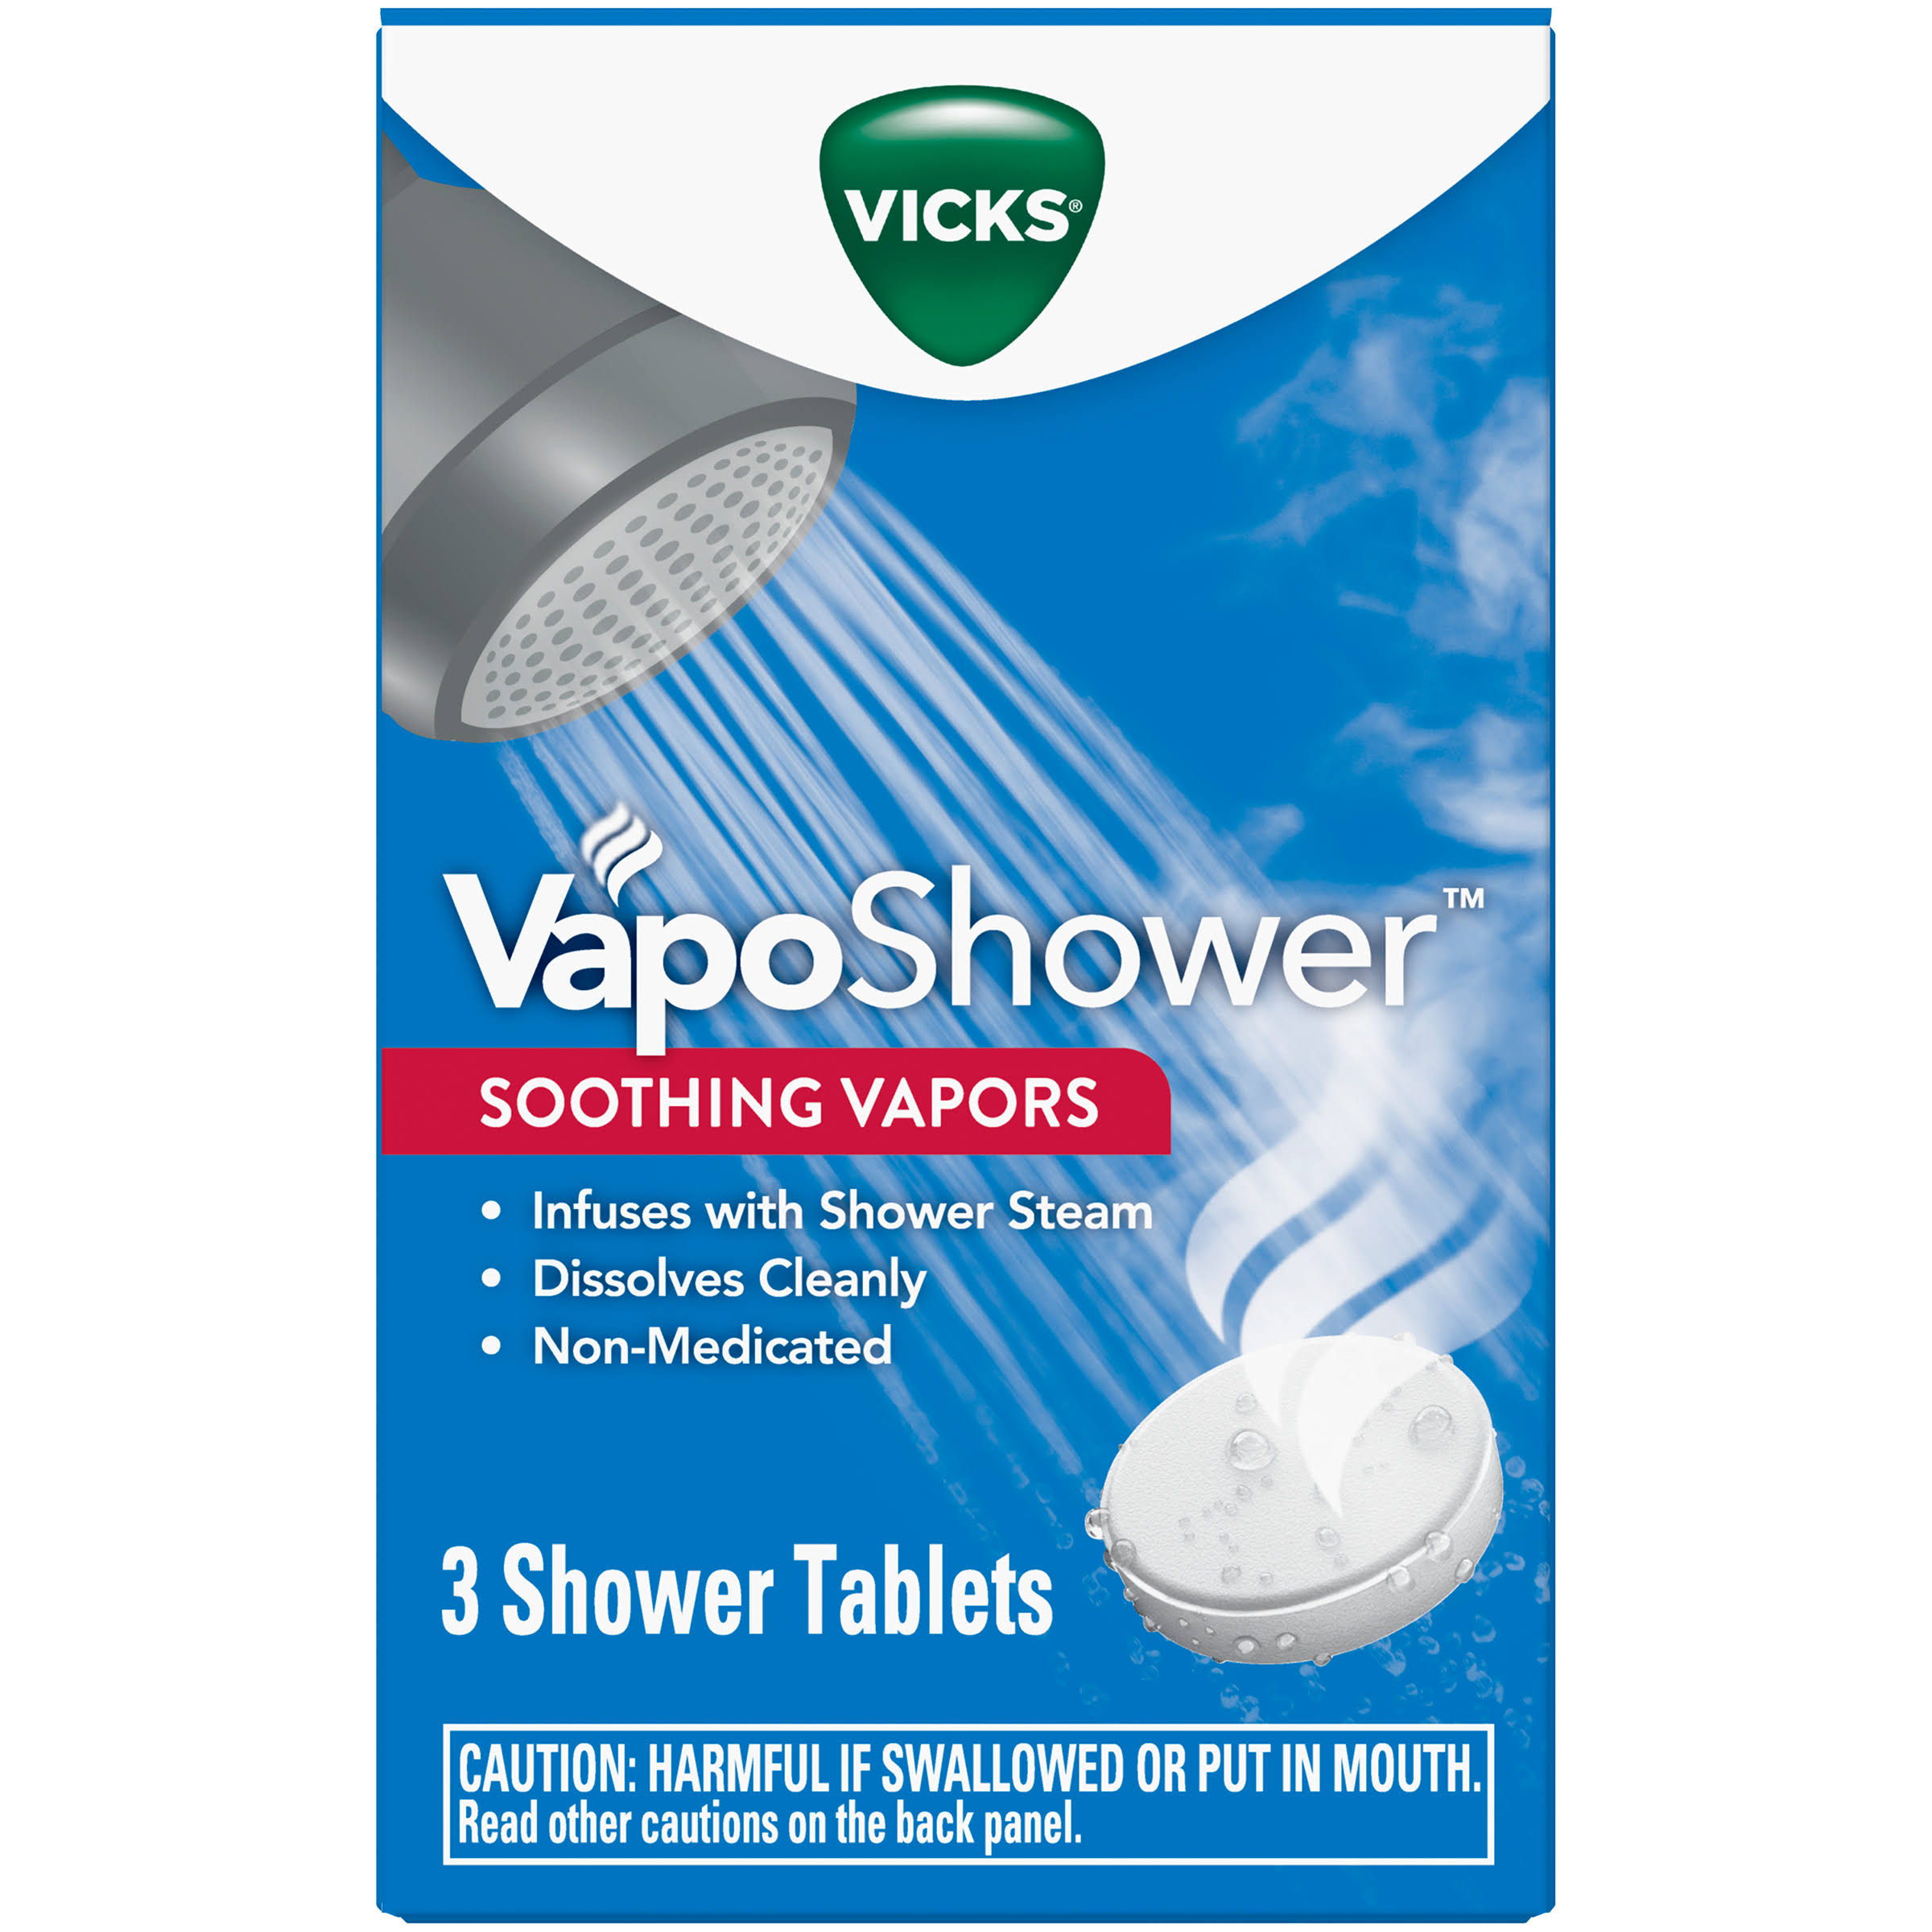 Vicks VapoShower Soothing Vapors, Tablets - 3 tablets